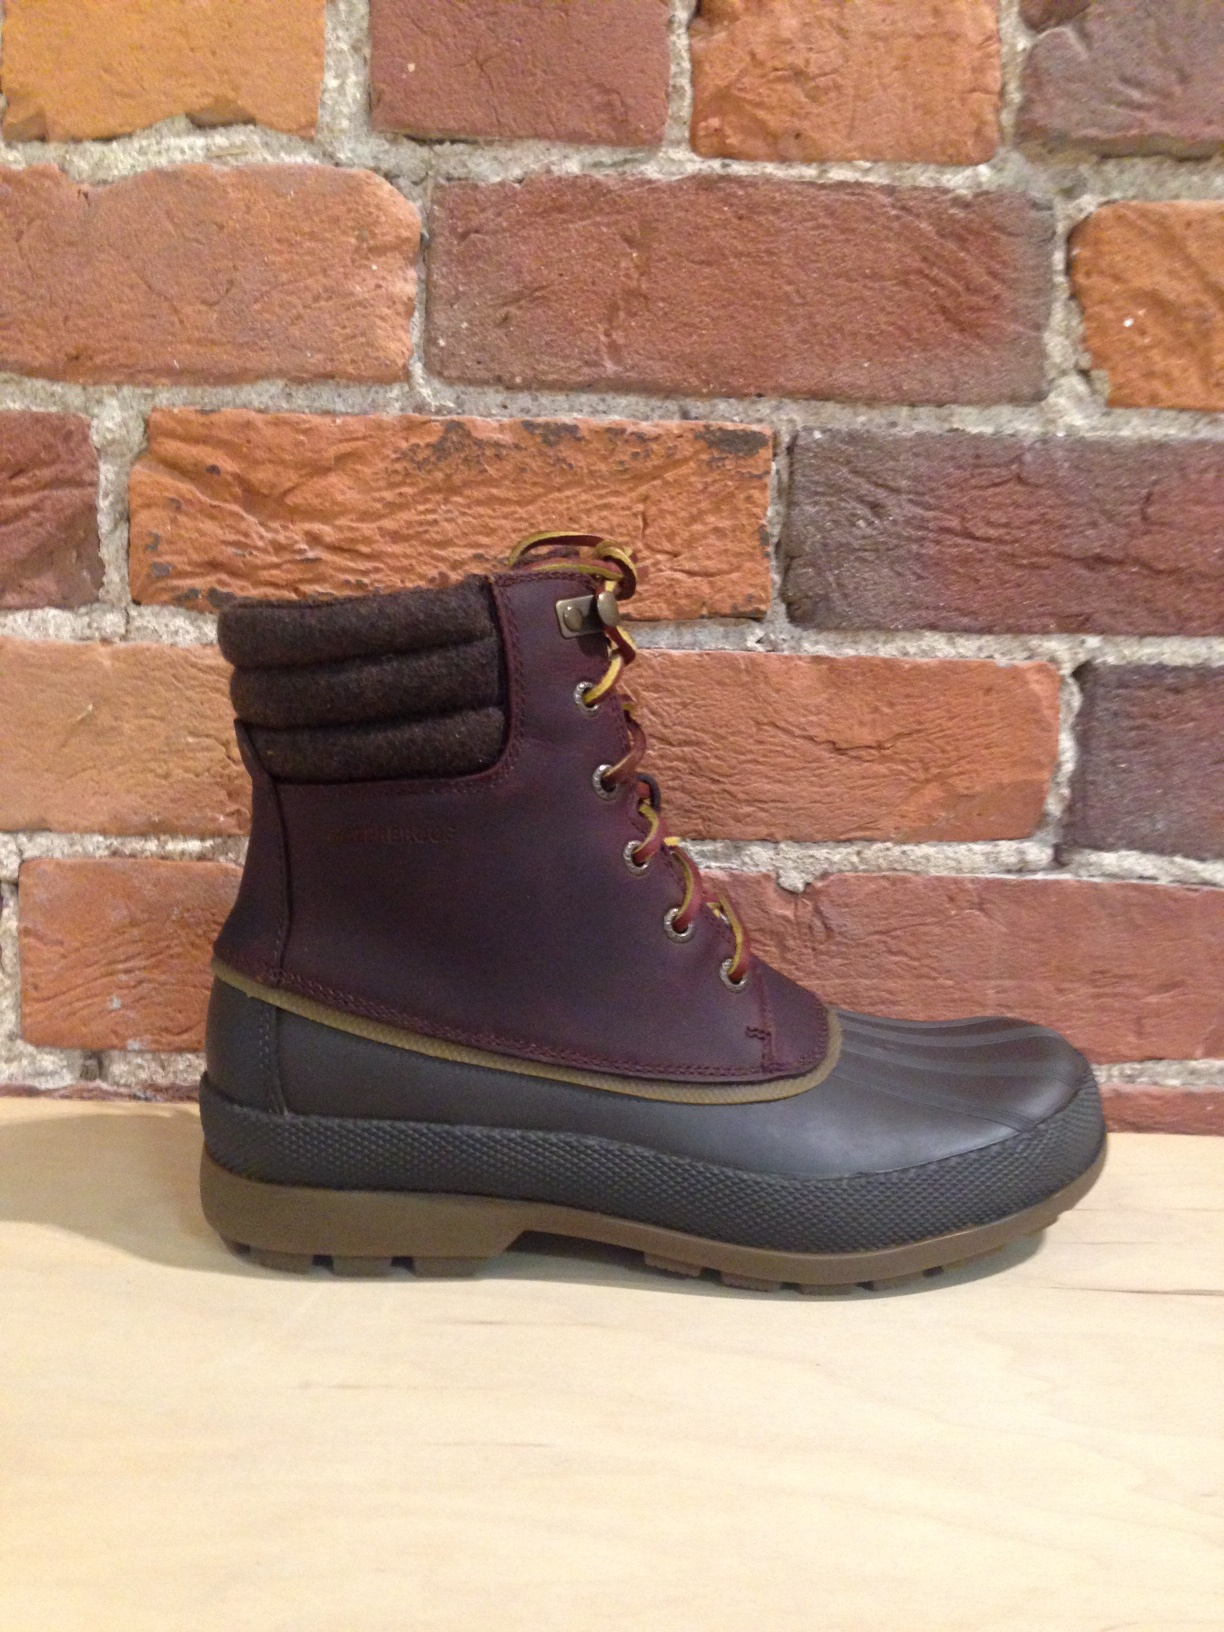 SPERRY - COLD BAY BOOT ICE + IN TAN